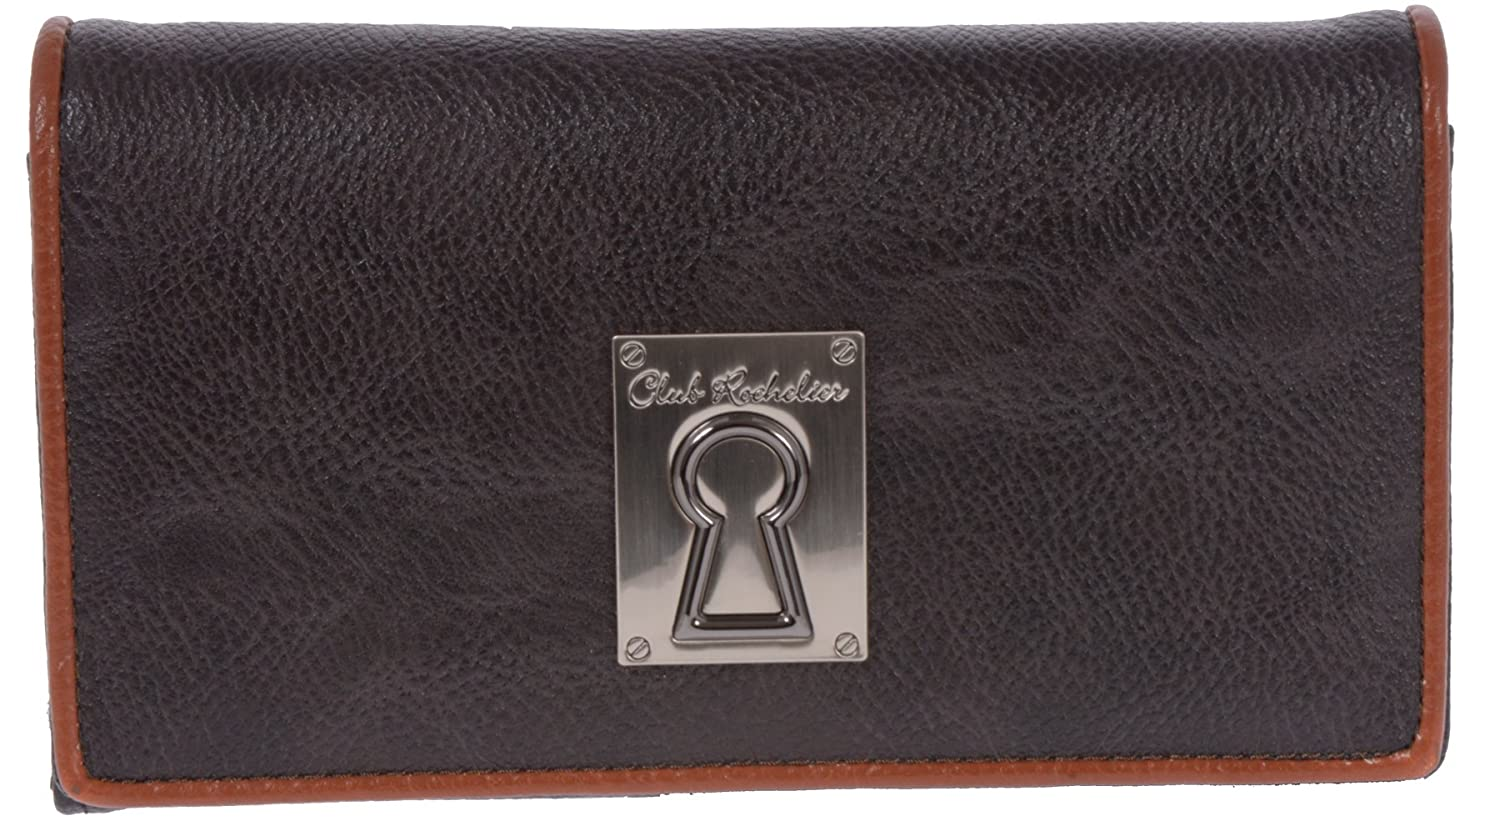 1bcf81f97843 Club Rochelier Women's Expandable Clutch Wallet (Brown): Amazon.ca ...